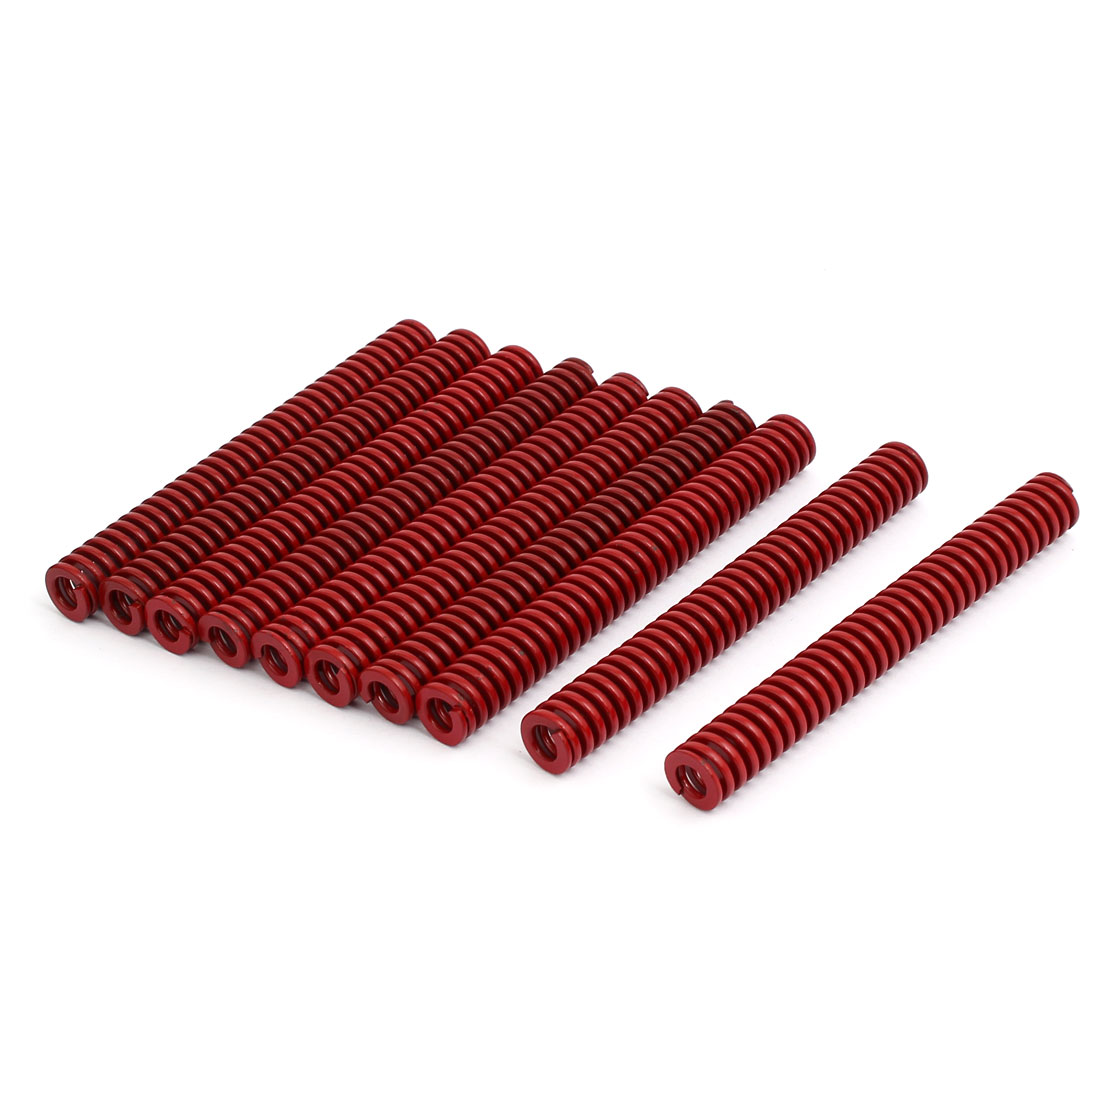 12mm Outer Dia 100mm Length Medium Load Compression Mould Die Spring Red 10pcs